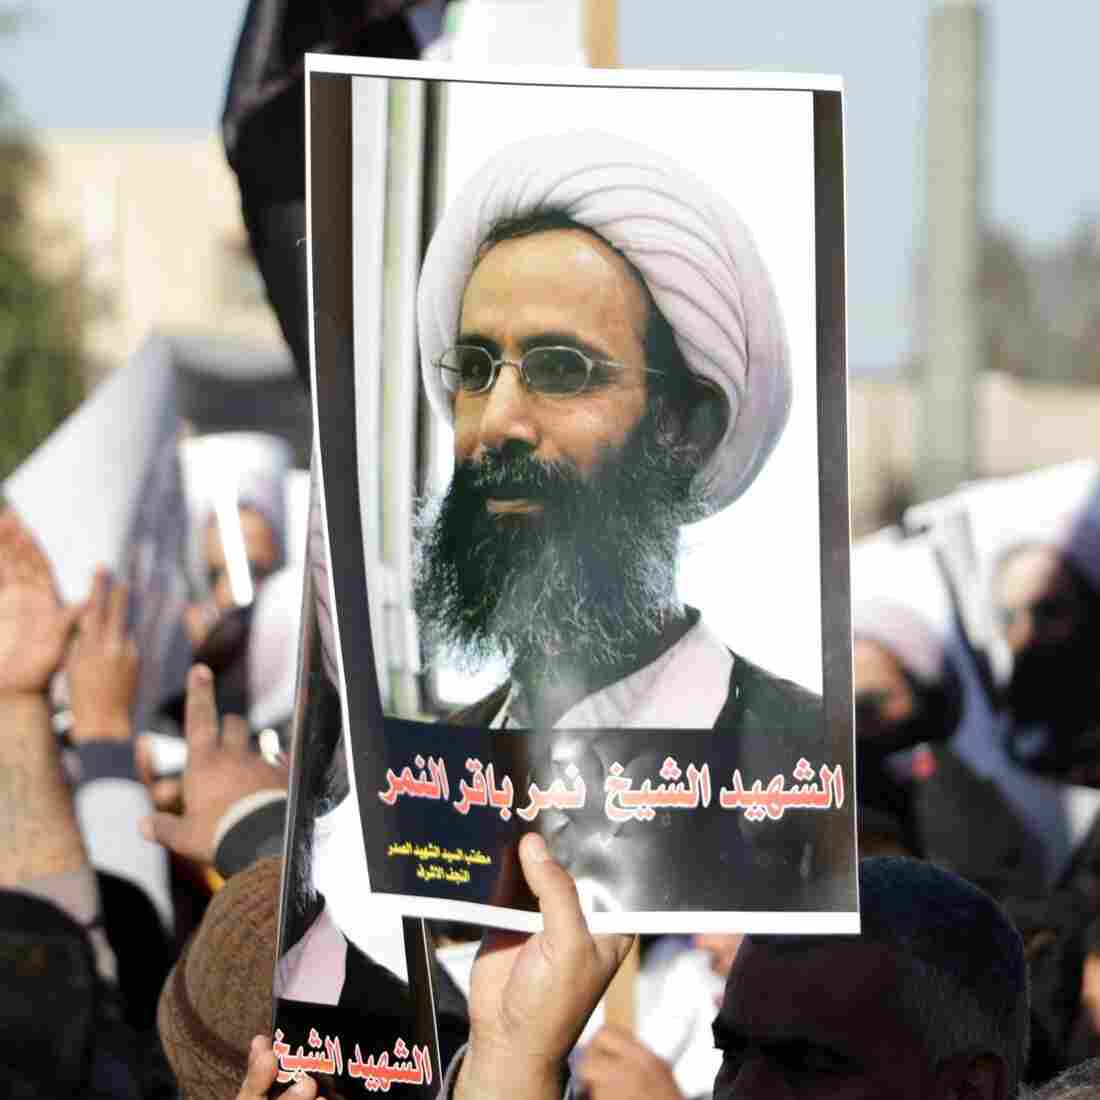 An Iraqi protester holds a poster of Shiite cleric Nimr al-Nimr, who was executed in Saudi Arabia, during a protest Monday in front of the gate of the Green Zone in Baghdad.